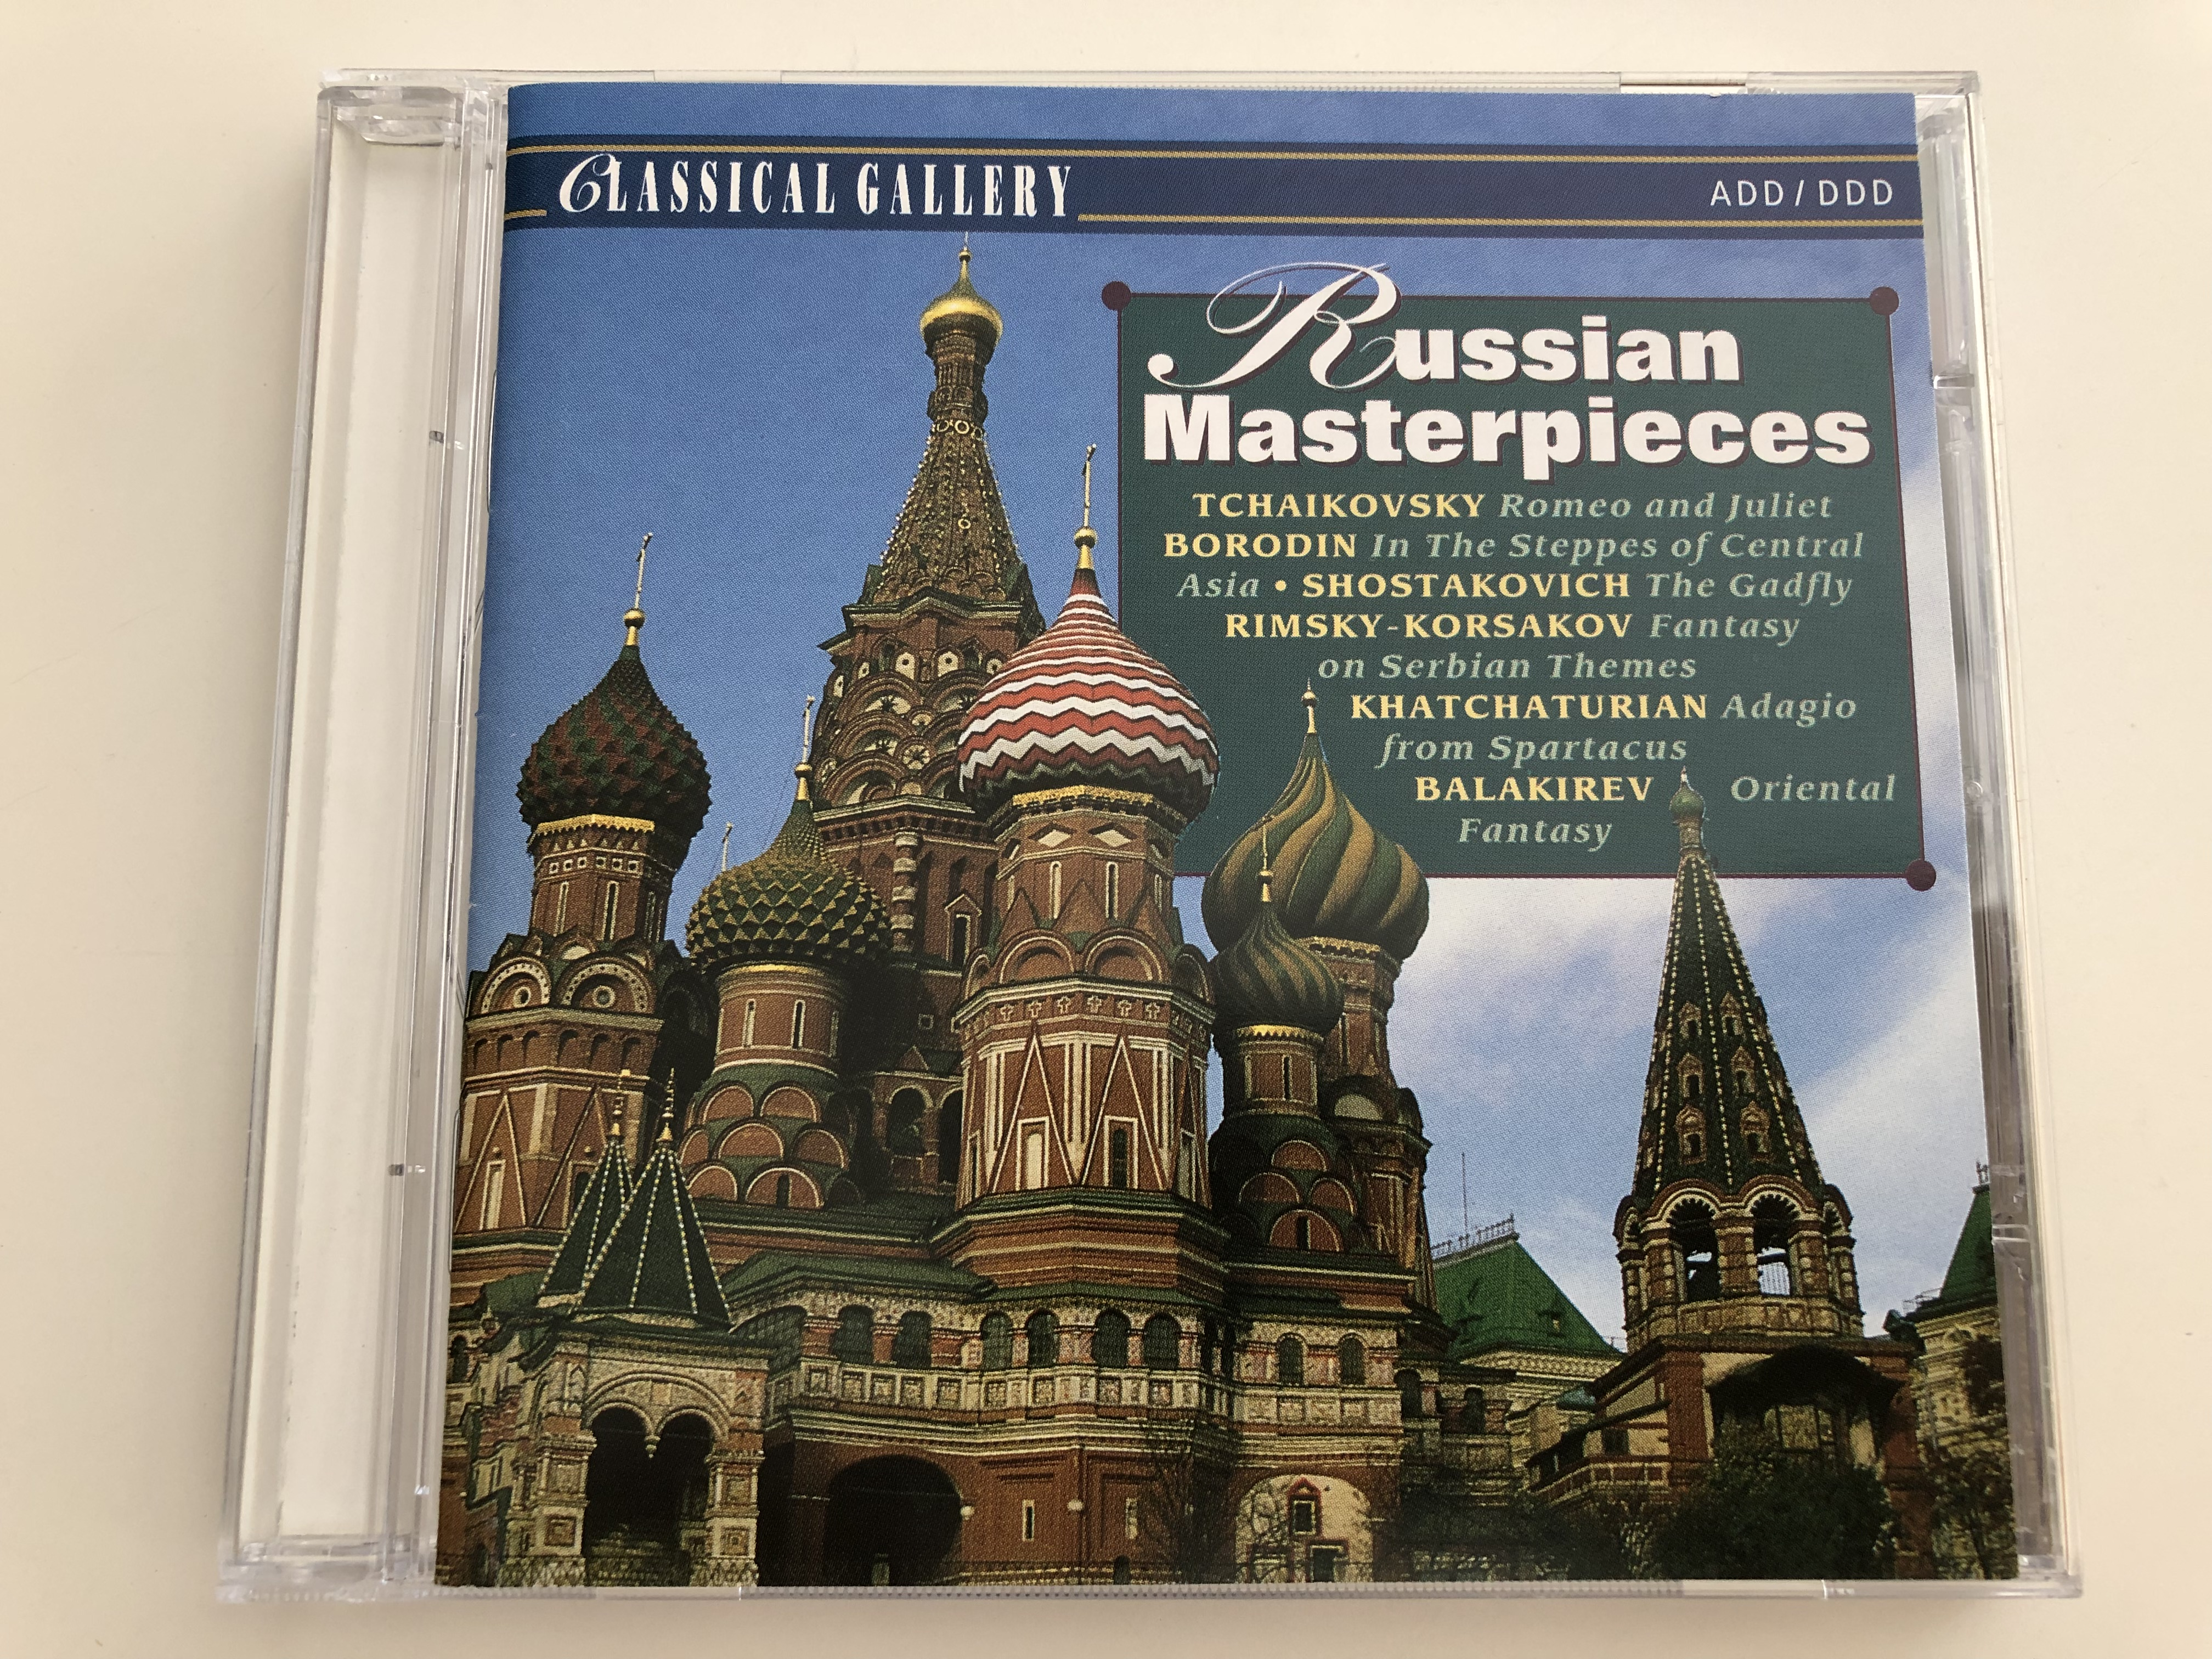 -russian-masterpieces-tchaikovsky-romeo-and-juliet-borodin-in-the-steppes-of-central-asia-shostakovich-the-gadfly-rimsky-korsakov-fantasy-on-serbian-themes-classical-gallery-clg-7121-audio-cd-1994-1-.jpg